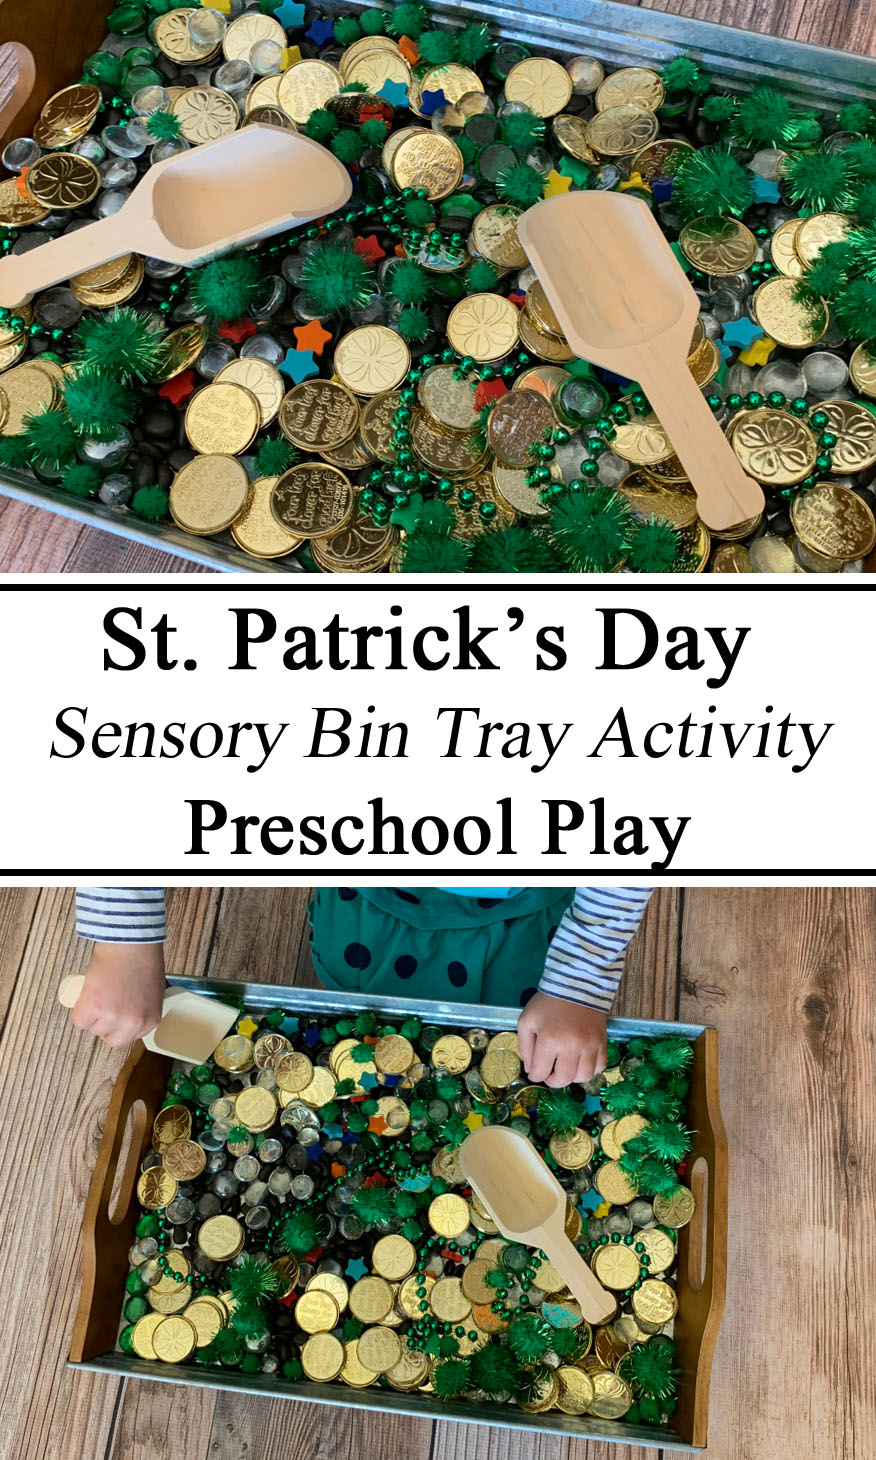 St Saint Patrick's Patrick Paddy's Paddys Day Themed Activity Sensory Play Bin Tray Loose Parts Activity Hands on Educational Inspiration Ideas Early Years Unschooling Unschool Ideas for Parents Montessori Waldorf STEM STEAM Learn